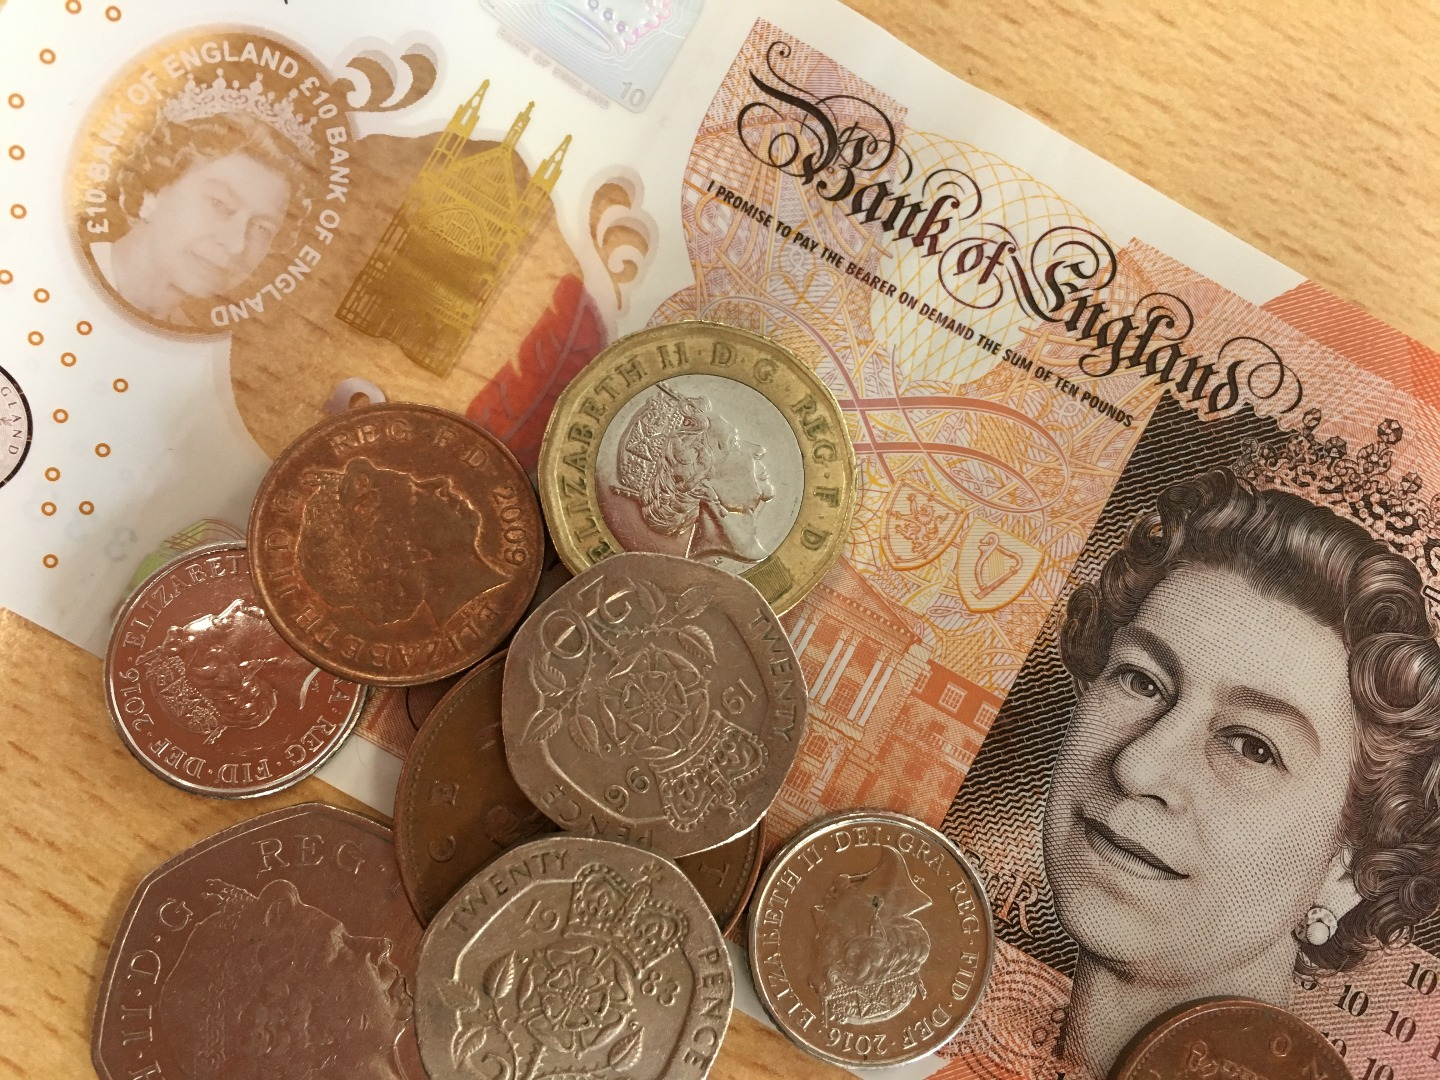 assorted-money.jpg Have your say on changes to council tax reduction scheme